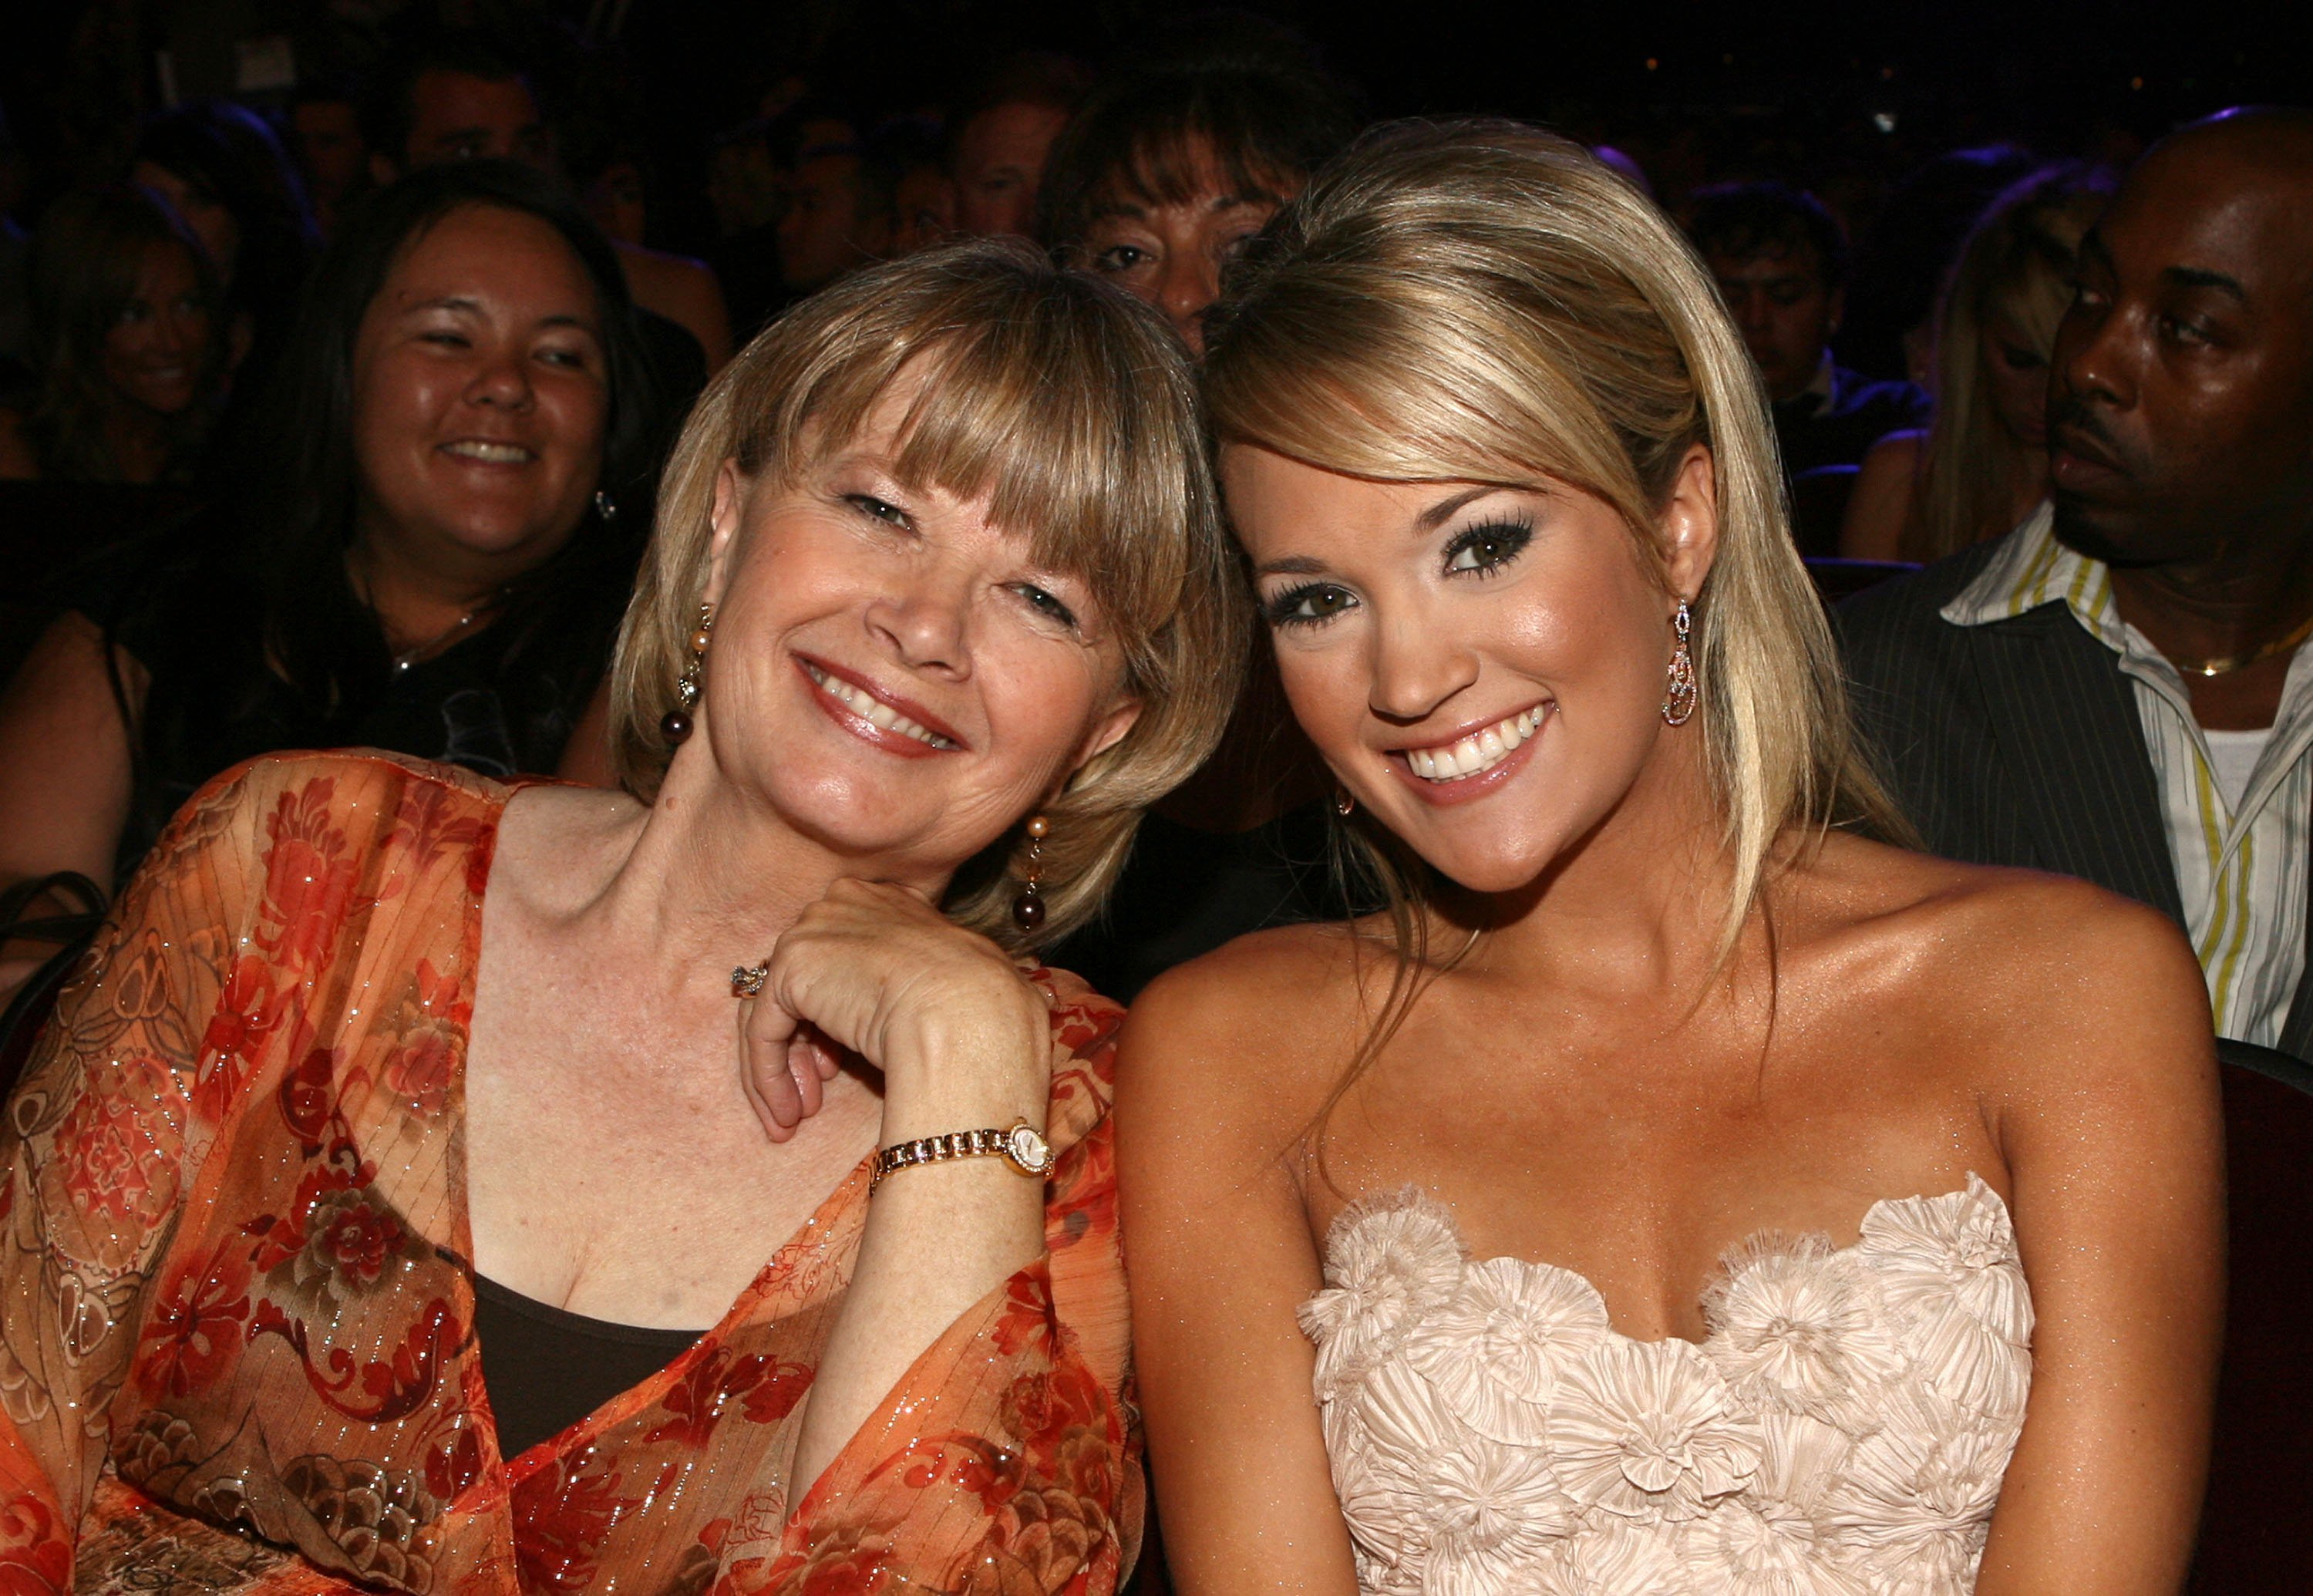 Carole and Carrie Underwood pose for a shot at the American Music Awards in Los Angeles, California on November 21, 2006 | Photo: Getty Images